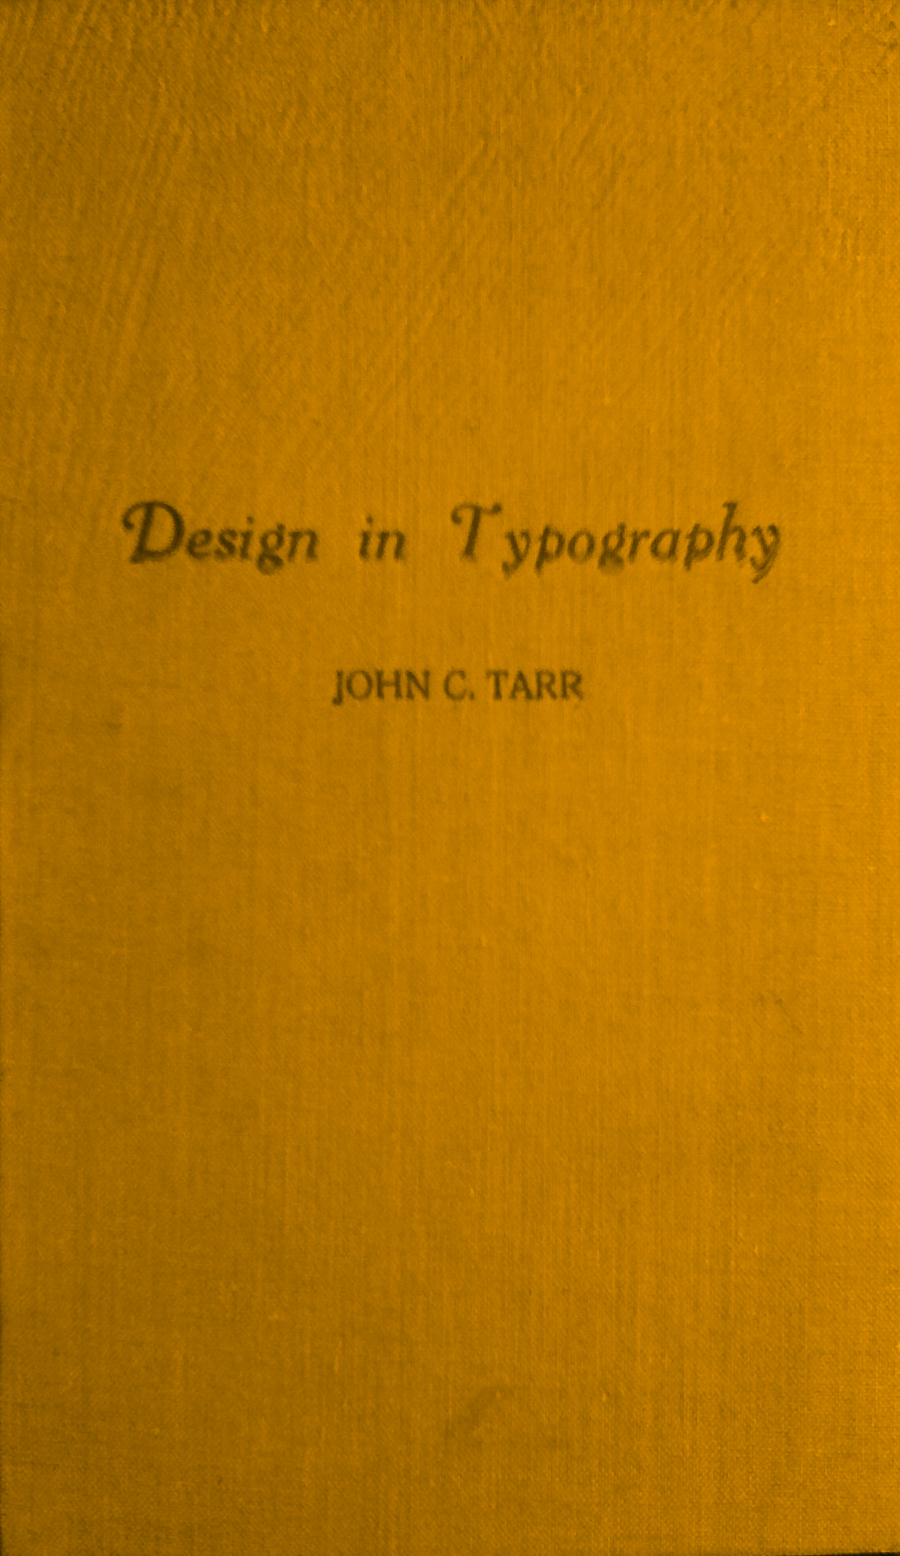 Design in Typography